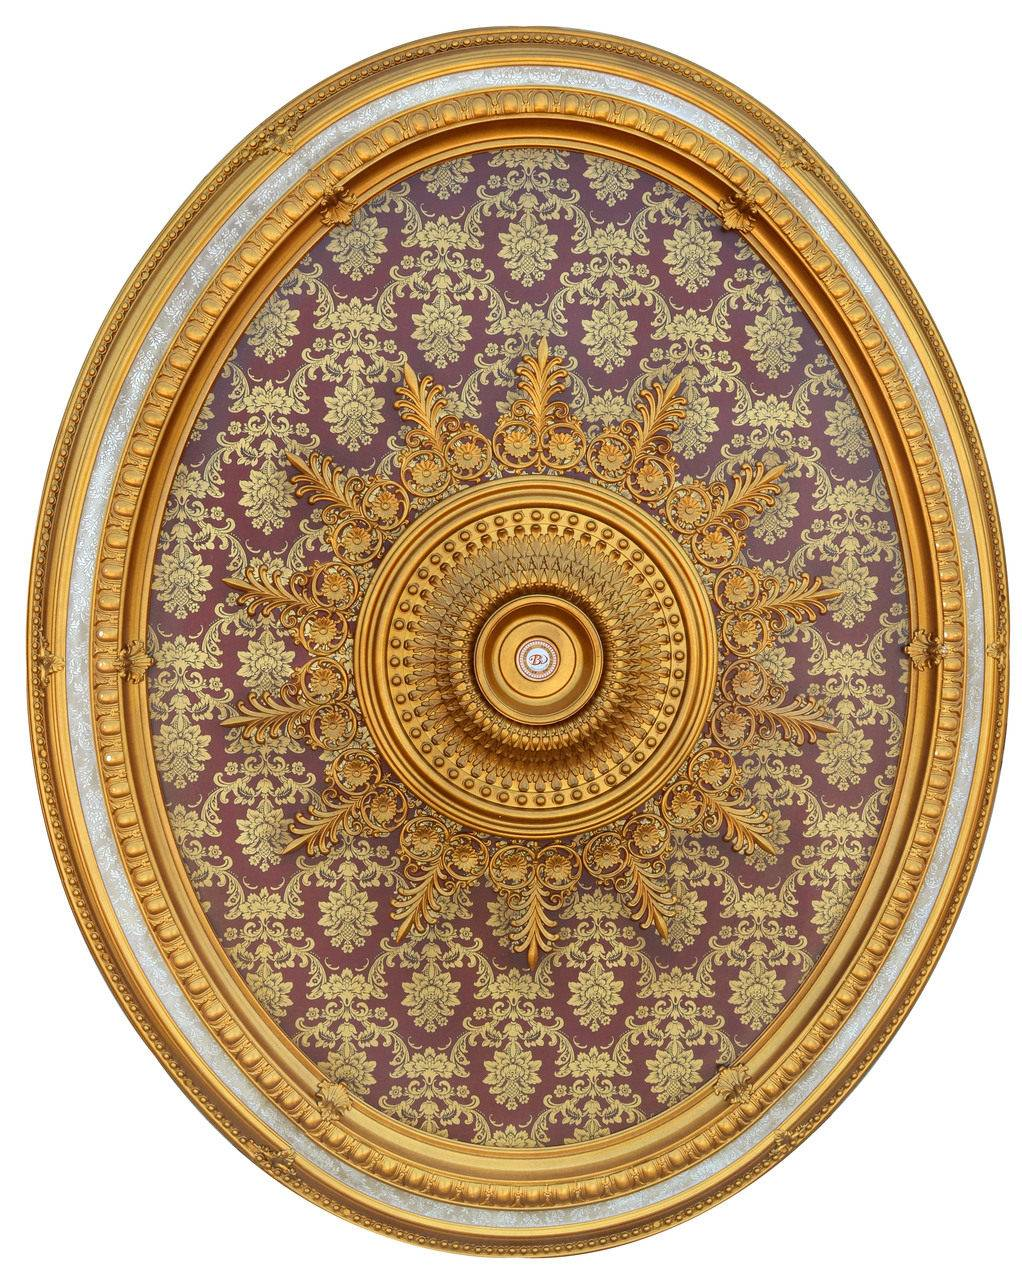 Banruo Antique Golden Polystyrene Artistic Architectural Ceiling Medallions